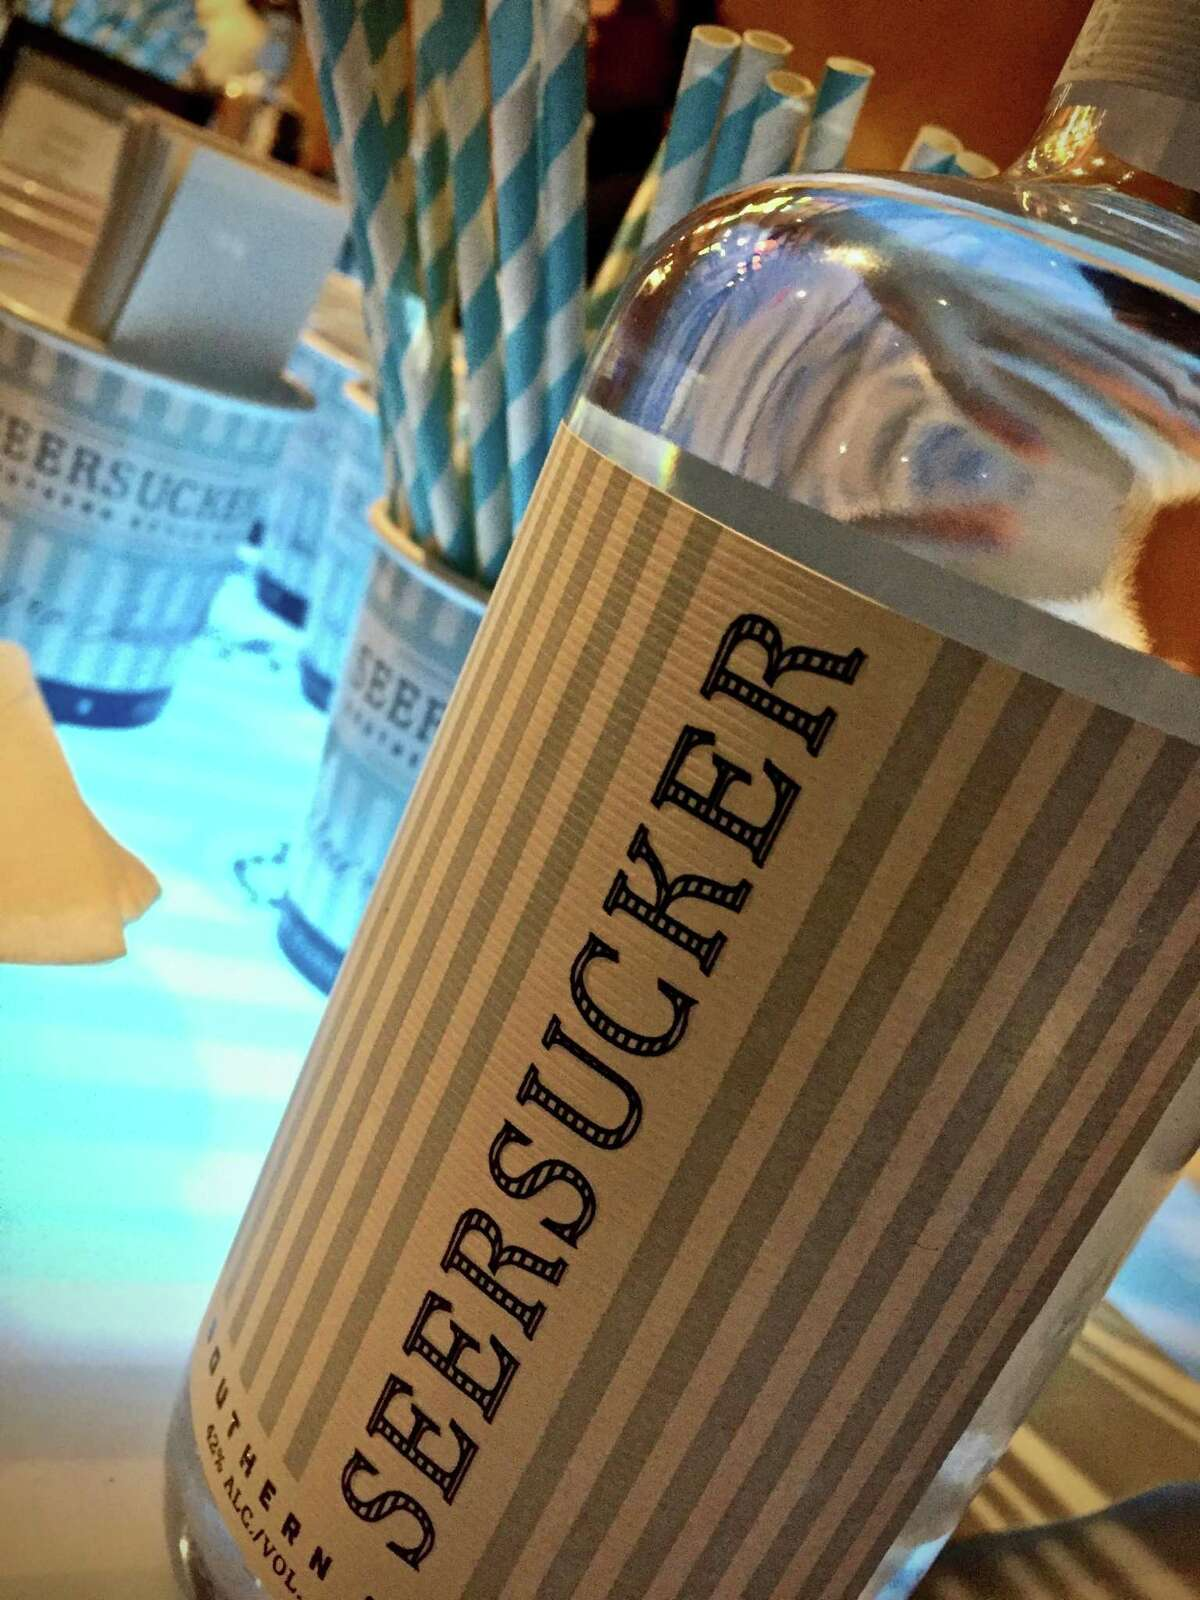 Seersucker Southern Style Gin is a co-sponser of the Traditional Ramos Gin Fizz Shake Party, which will be held at The Modernist 5-8 p.m. Sept. 10.